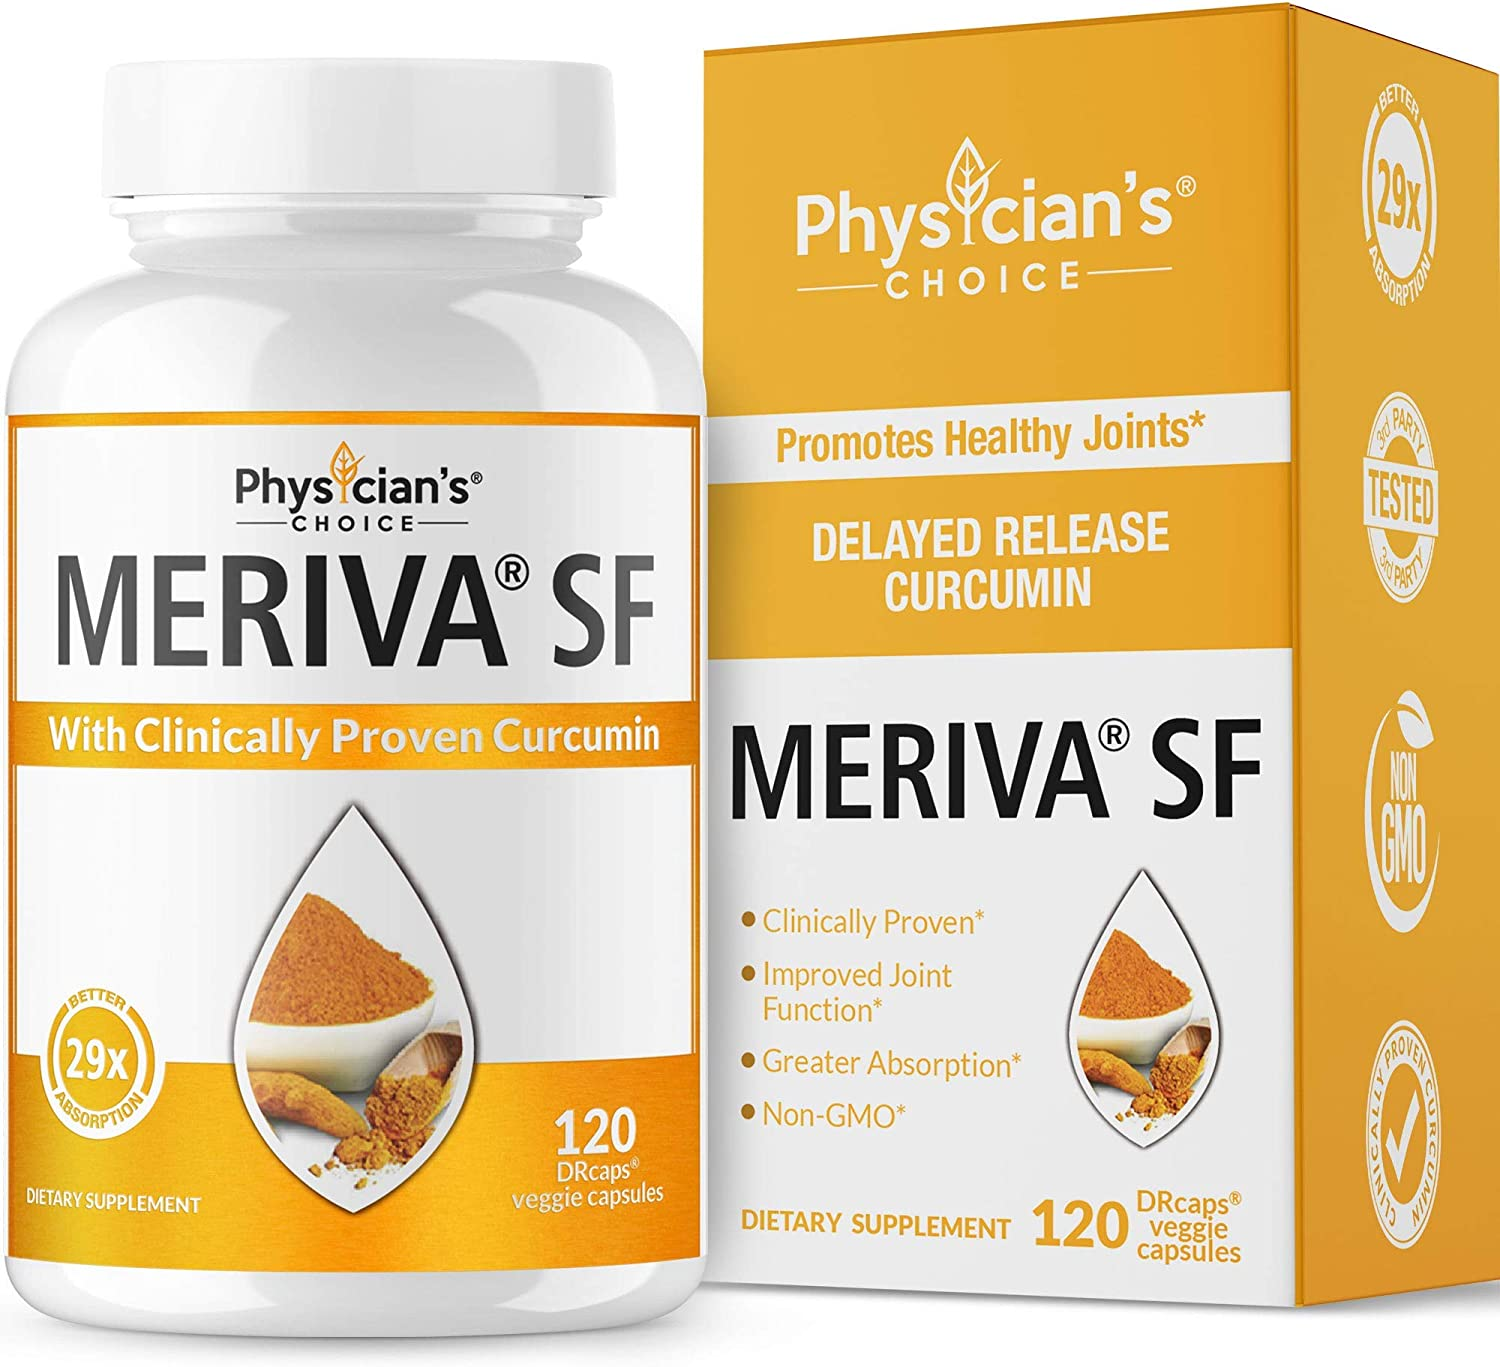 Meriva Curcumin 500, Clinically Proven 29X Better Absorption Than Ordinary Turmeric Curcumin Supplements, Proven Joint Support Inflammatory Response, Soy Free, Sustained Release, 120 Capsules